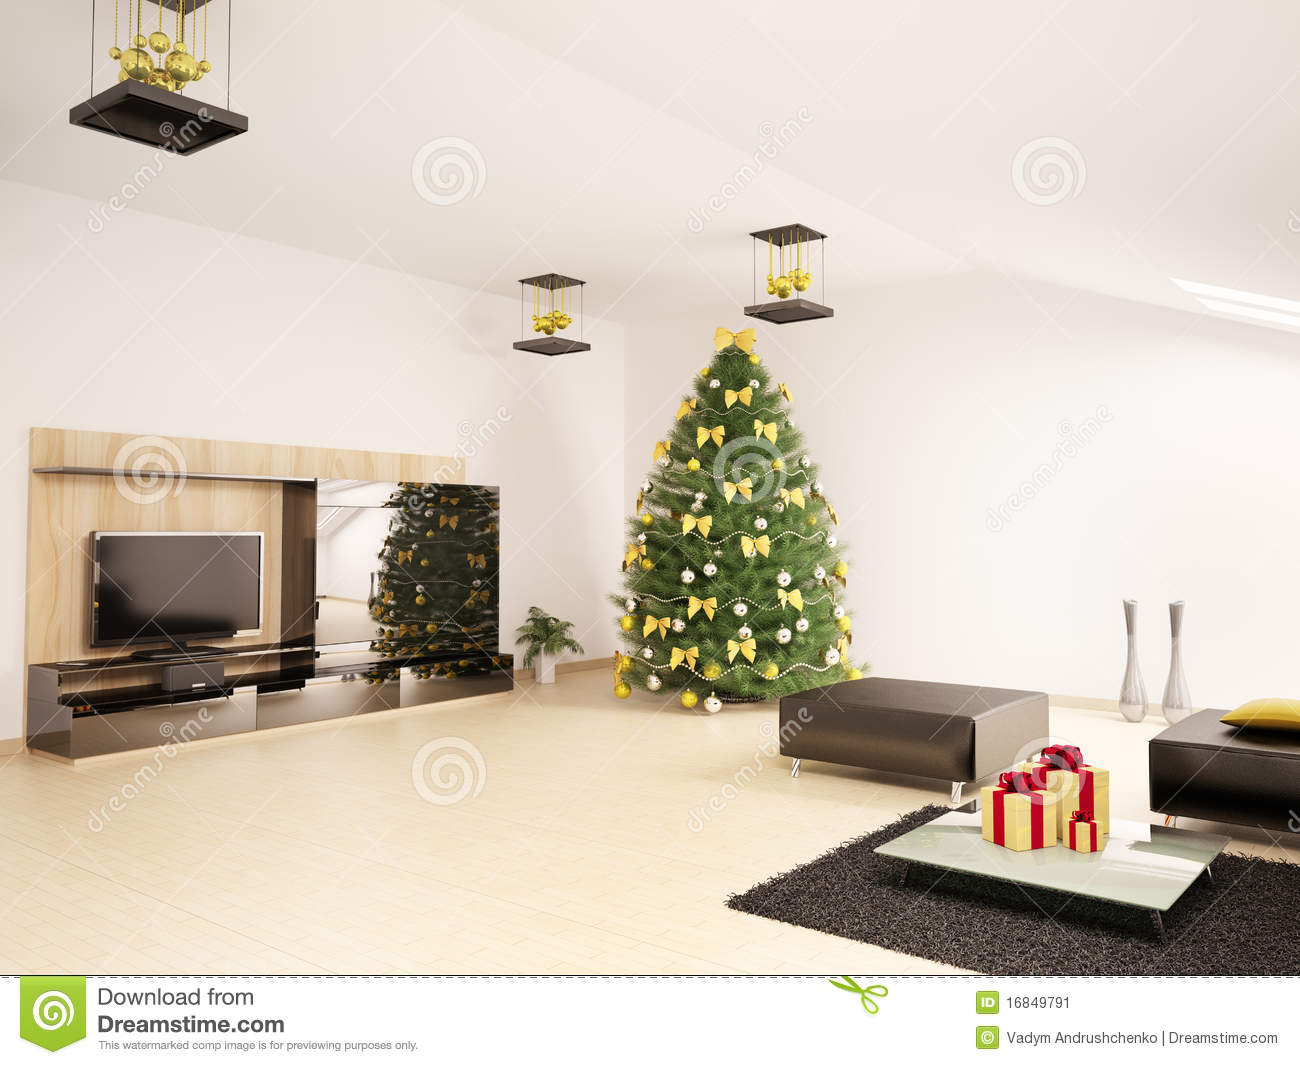 Christmas fir tree in living room interior 3d stock image image 16849791 for Christmas tree in living room photos